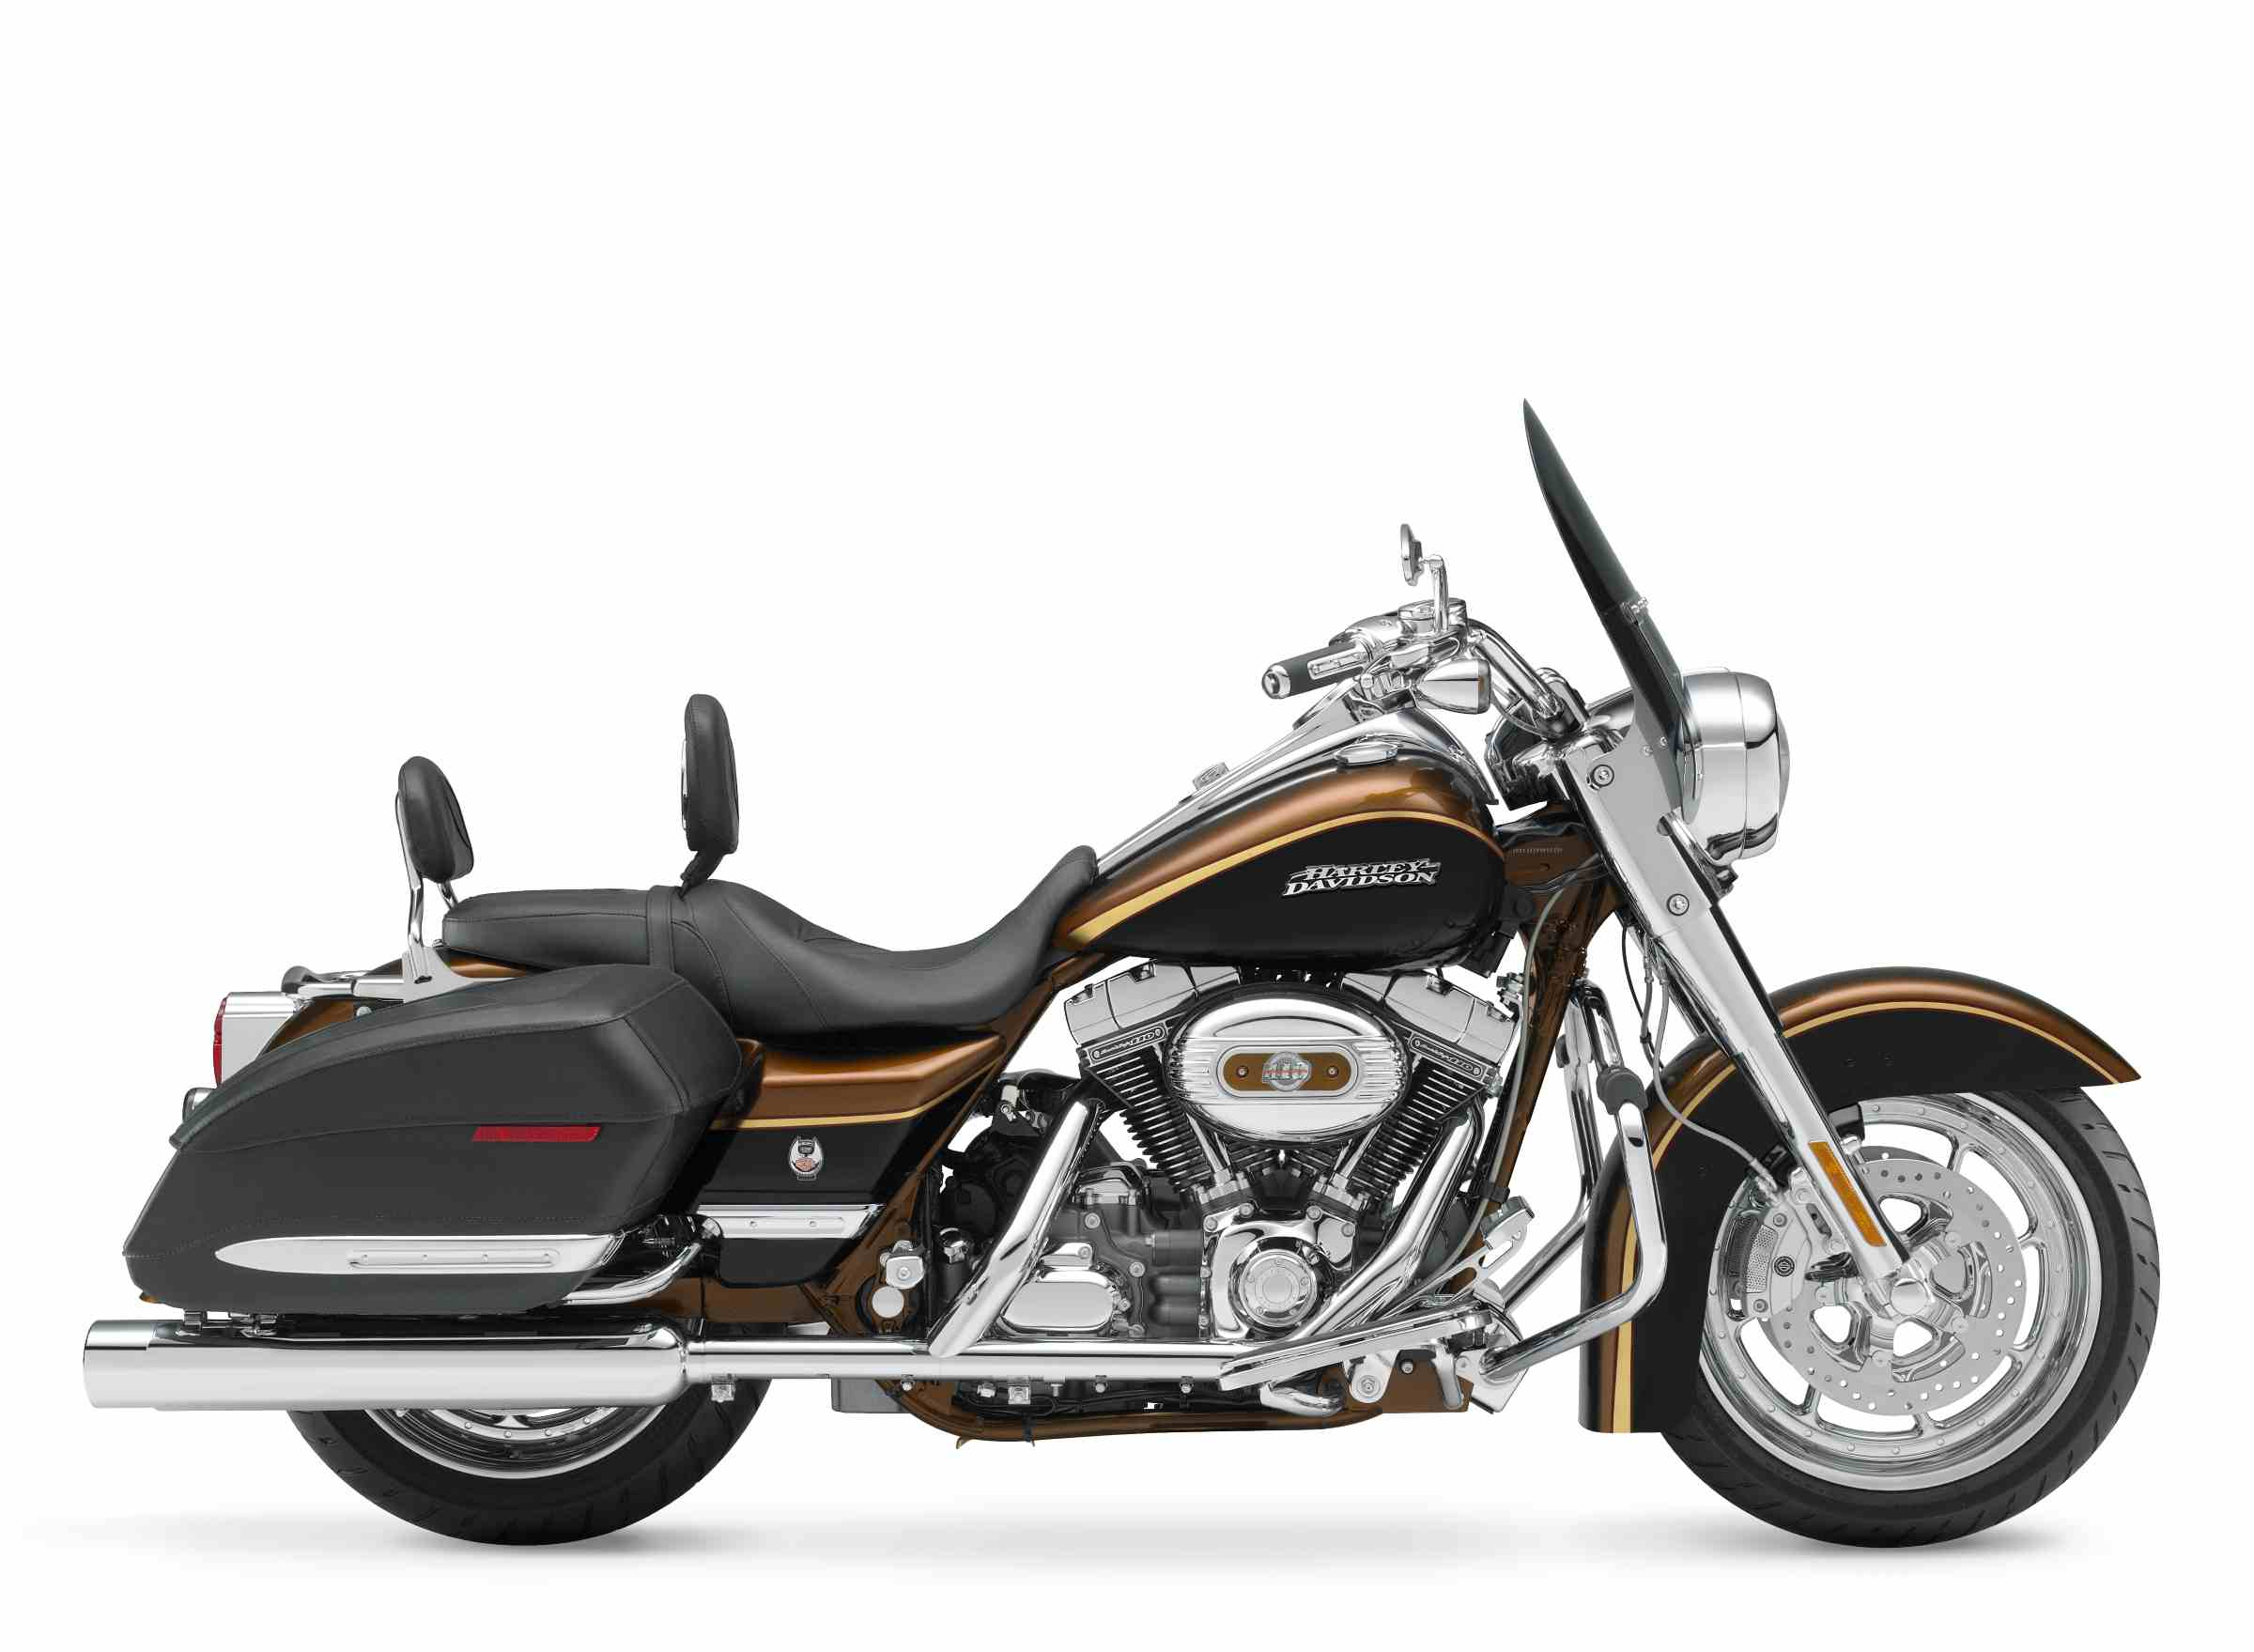 Anniversary Edition from Road King